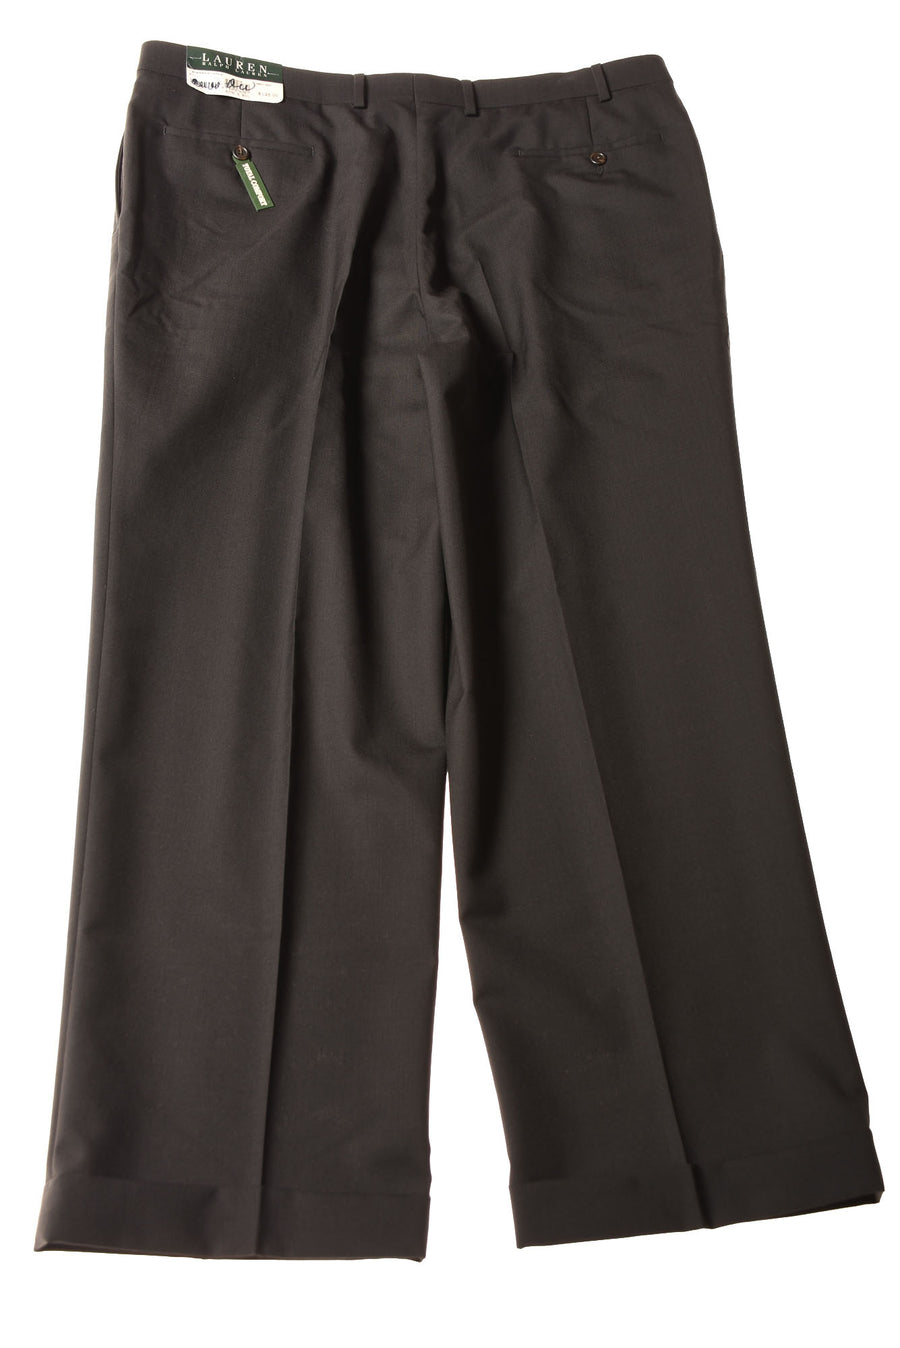 NEW Ralph Lauren Men's Slacks 40 Black